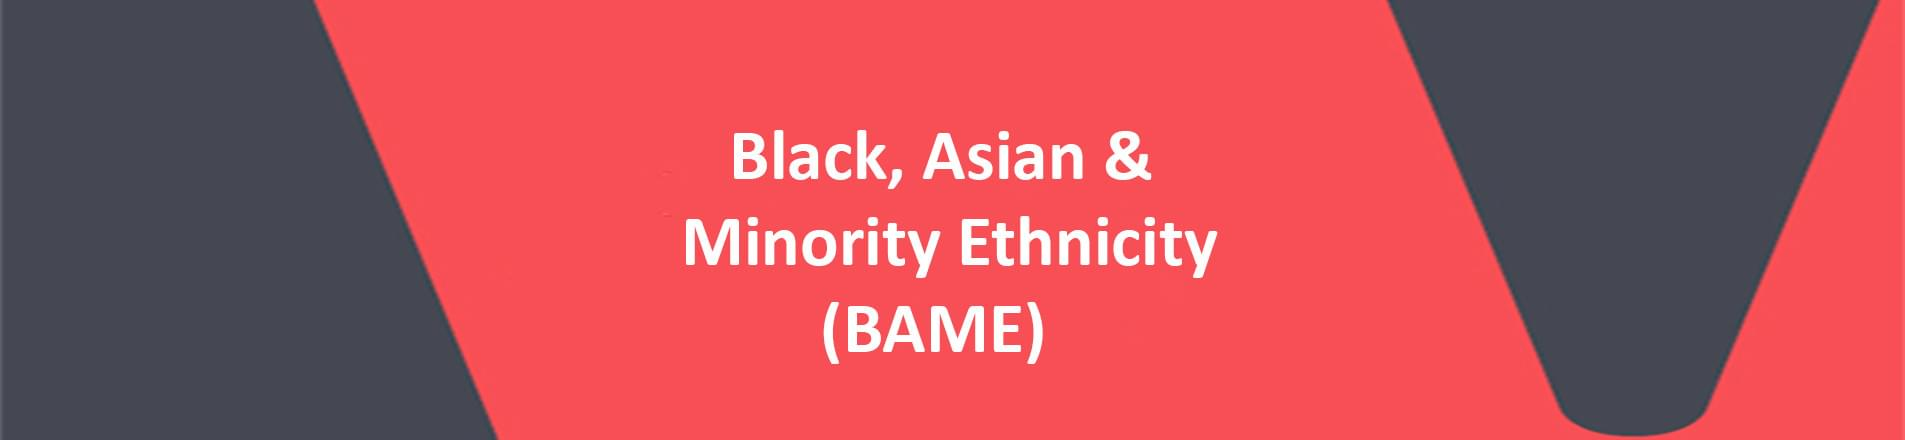 Image of the words black, asian & minority ethnicity on a red background